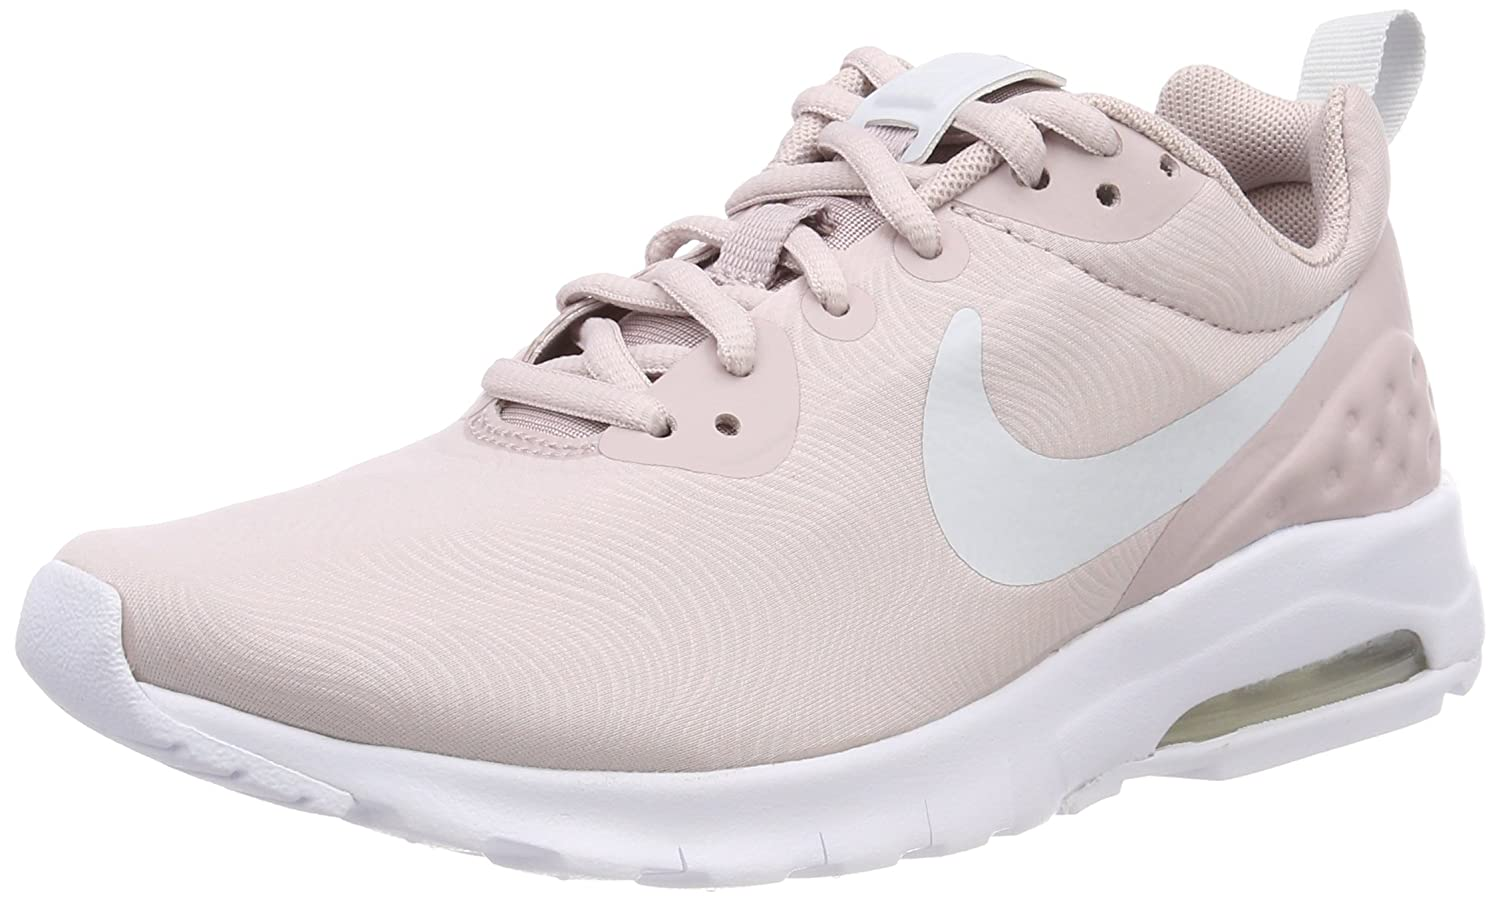 Nike Women's Air Max Motion Sneakers